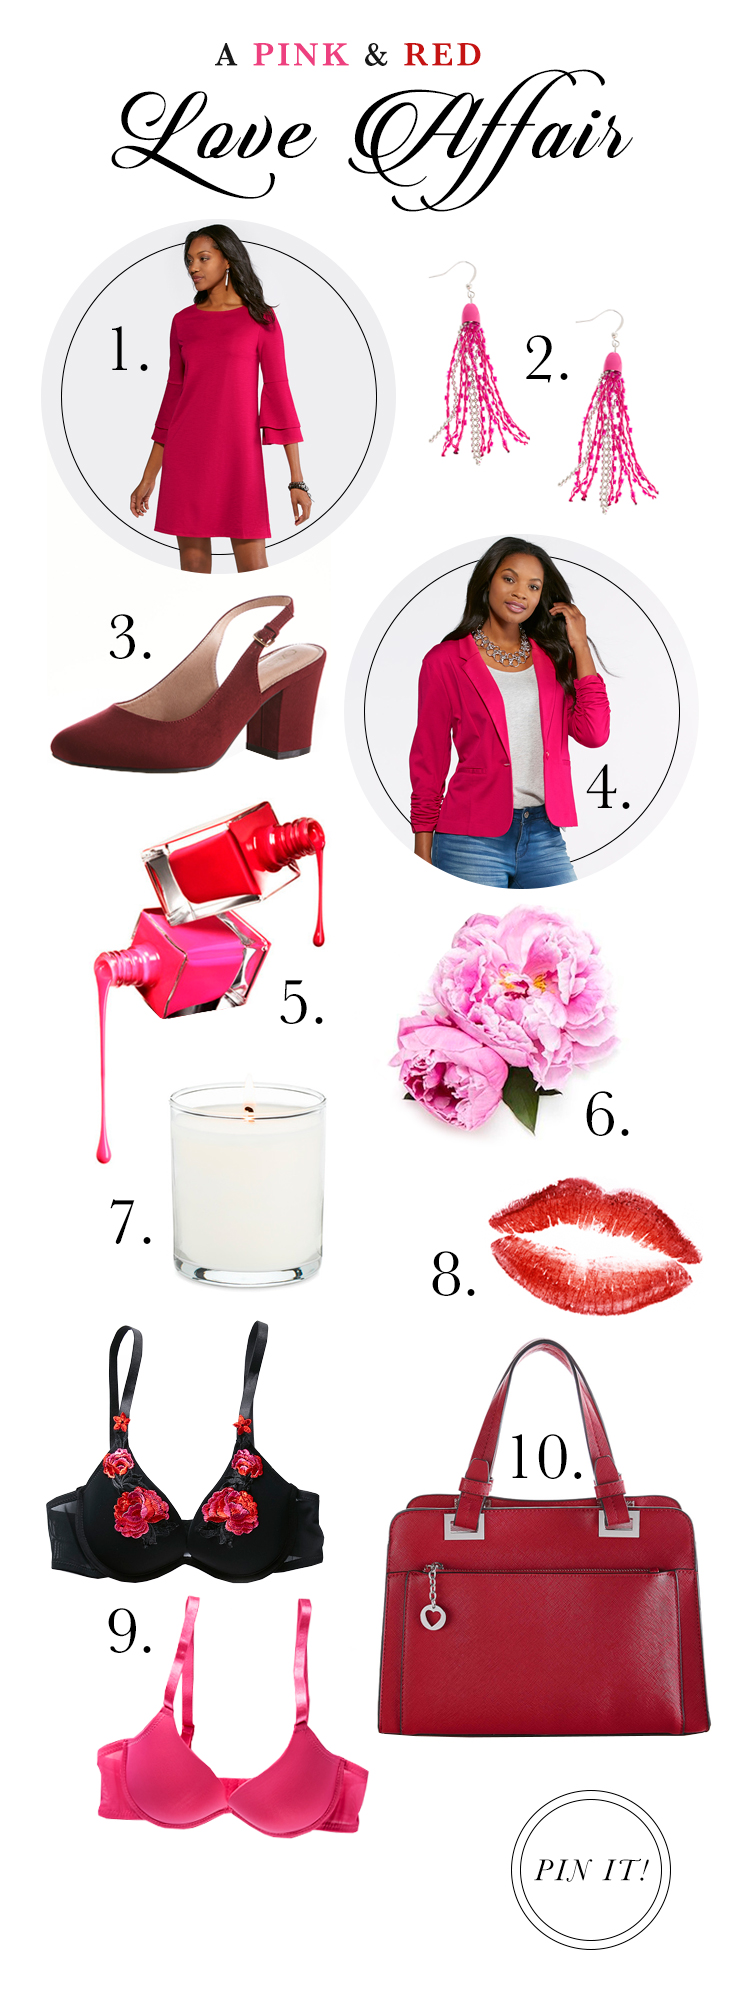 """A Pink and Red Love Affair"" 1. Pink Shift dress 2. Pink Statement Earrings 3. red heels 4. pink blazer 5. pink and red nailpolish 6. pink flowers 7. candle 8. red lipstick 9. red and pink bras 10. red handbag"